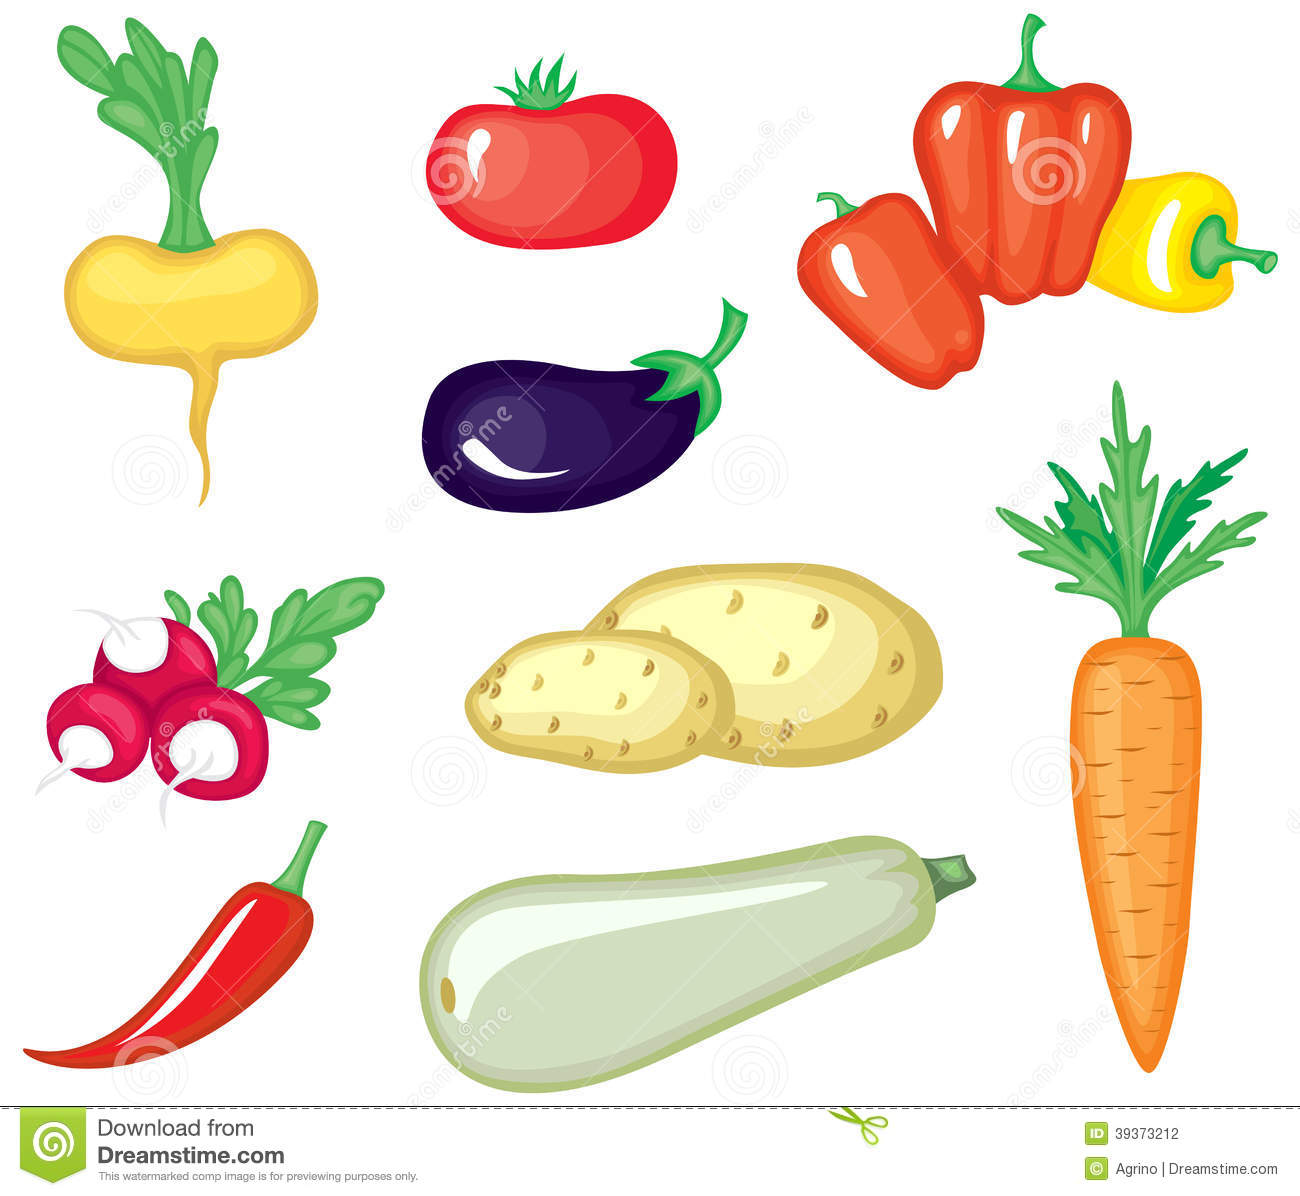 Cartoon Vegetables Set Stock Vector - Image: 39373212